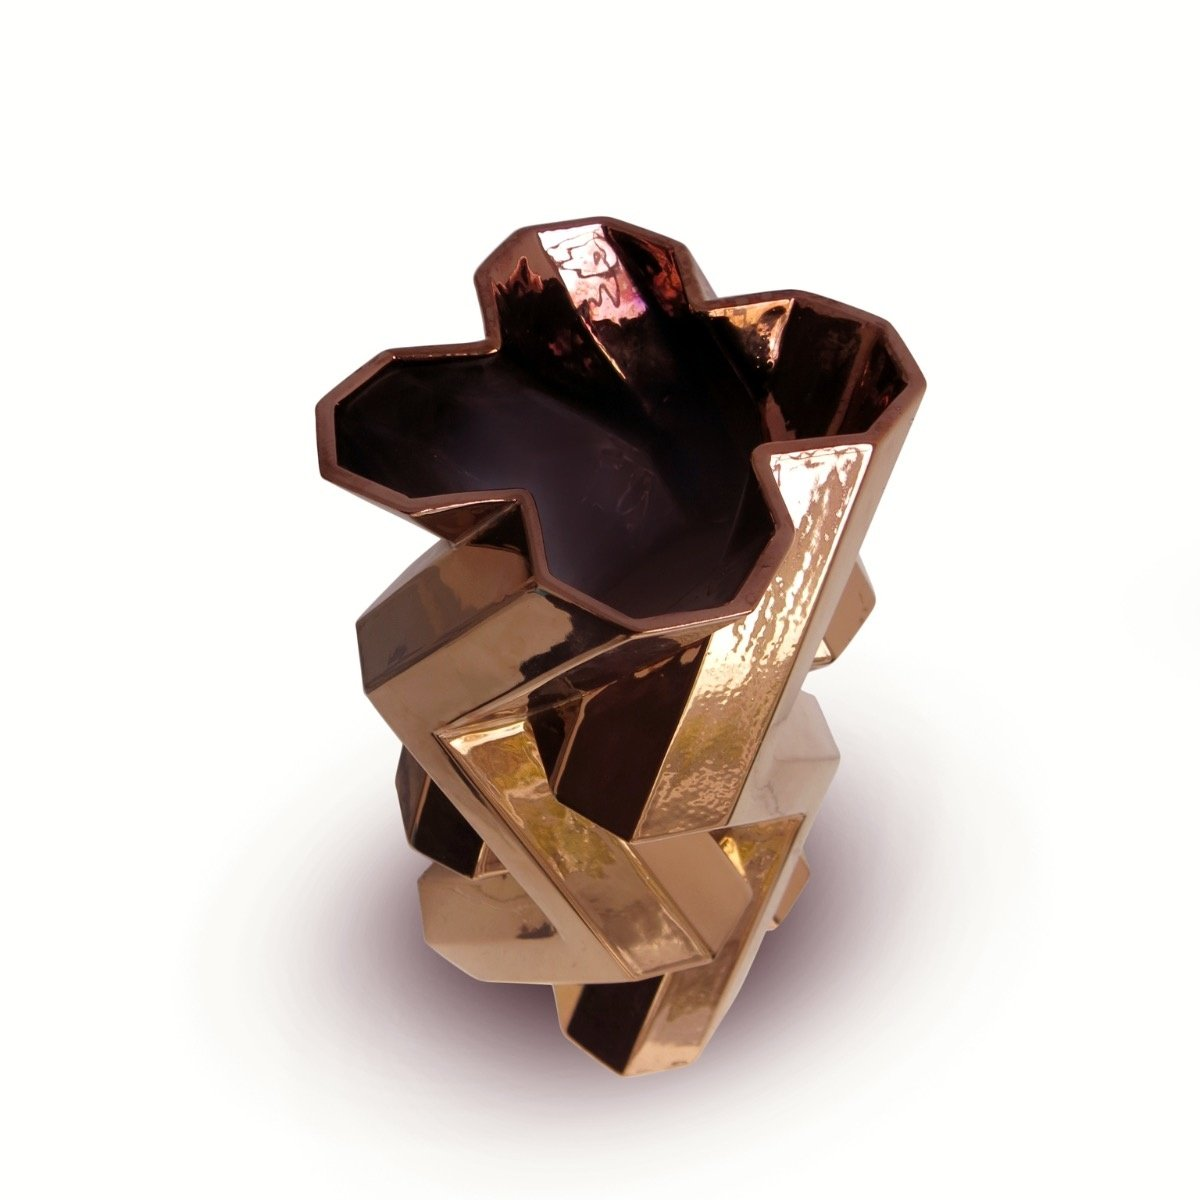 FORTRESS TOWER VASE - DARK GOLD